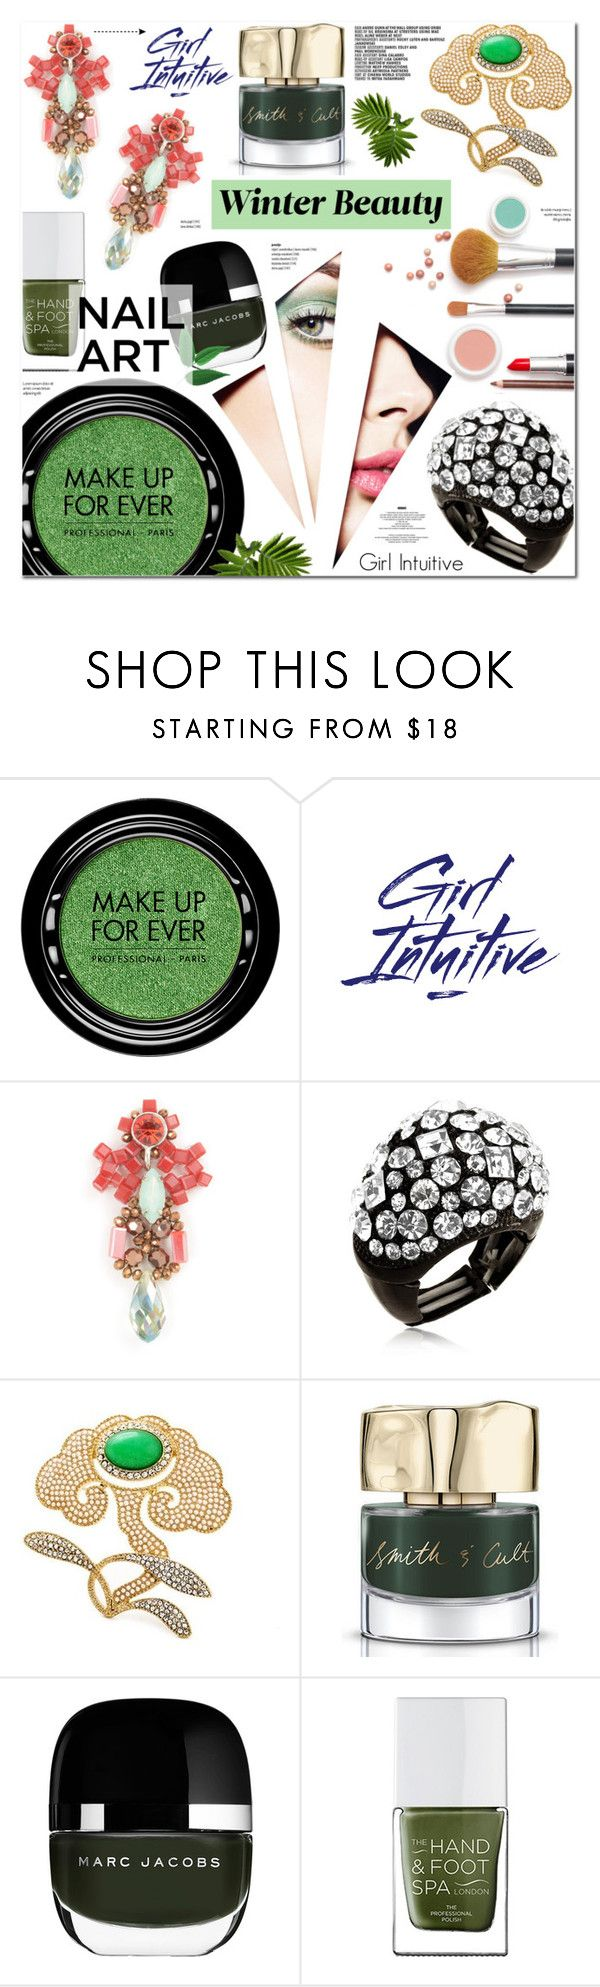 """""""Girl Intuitive 17"""" by anyasdesigns ❤ liked on Polyvore featuring MAKE UP FOR EVER, Smith & Cult, Marc Jacobs and StyleNanda"""